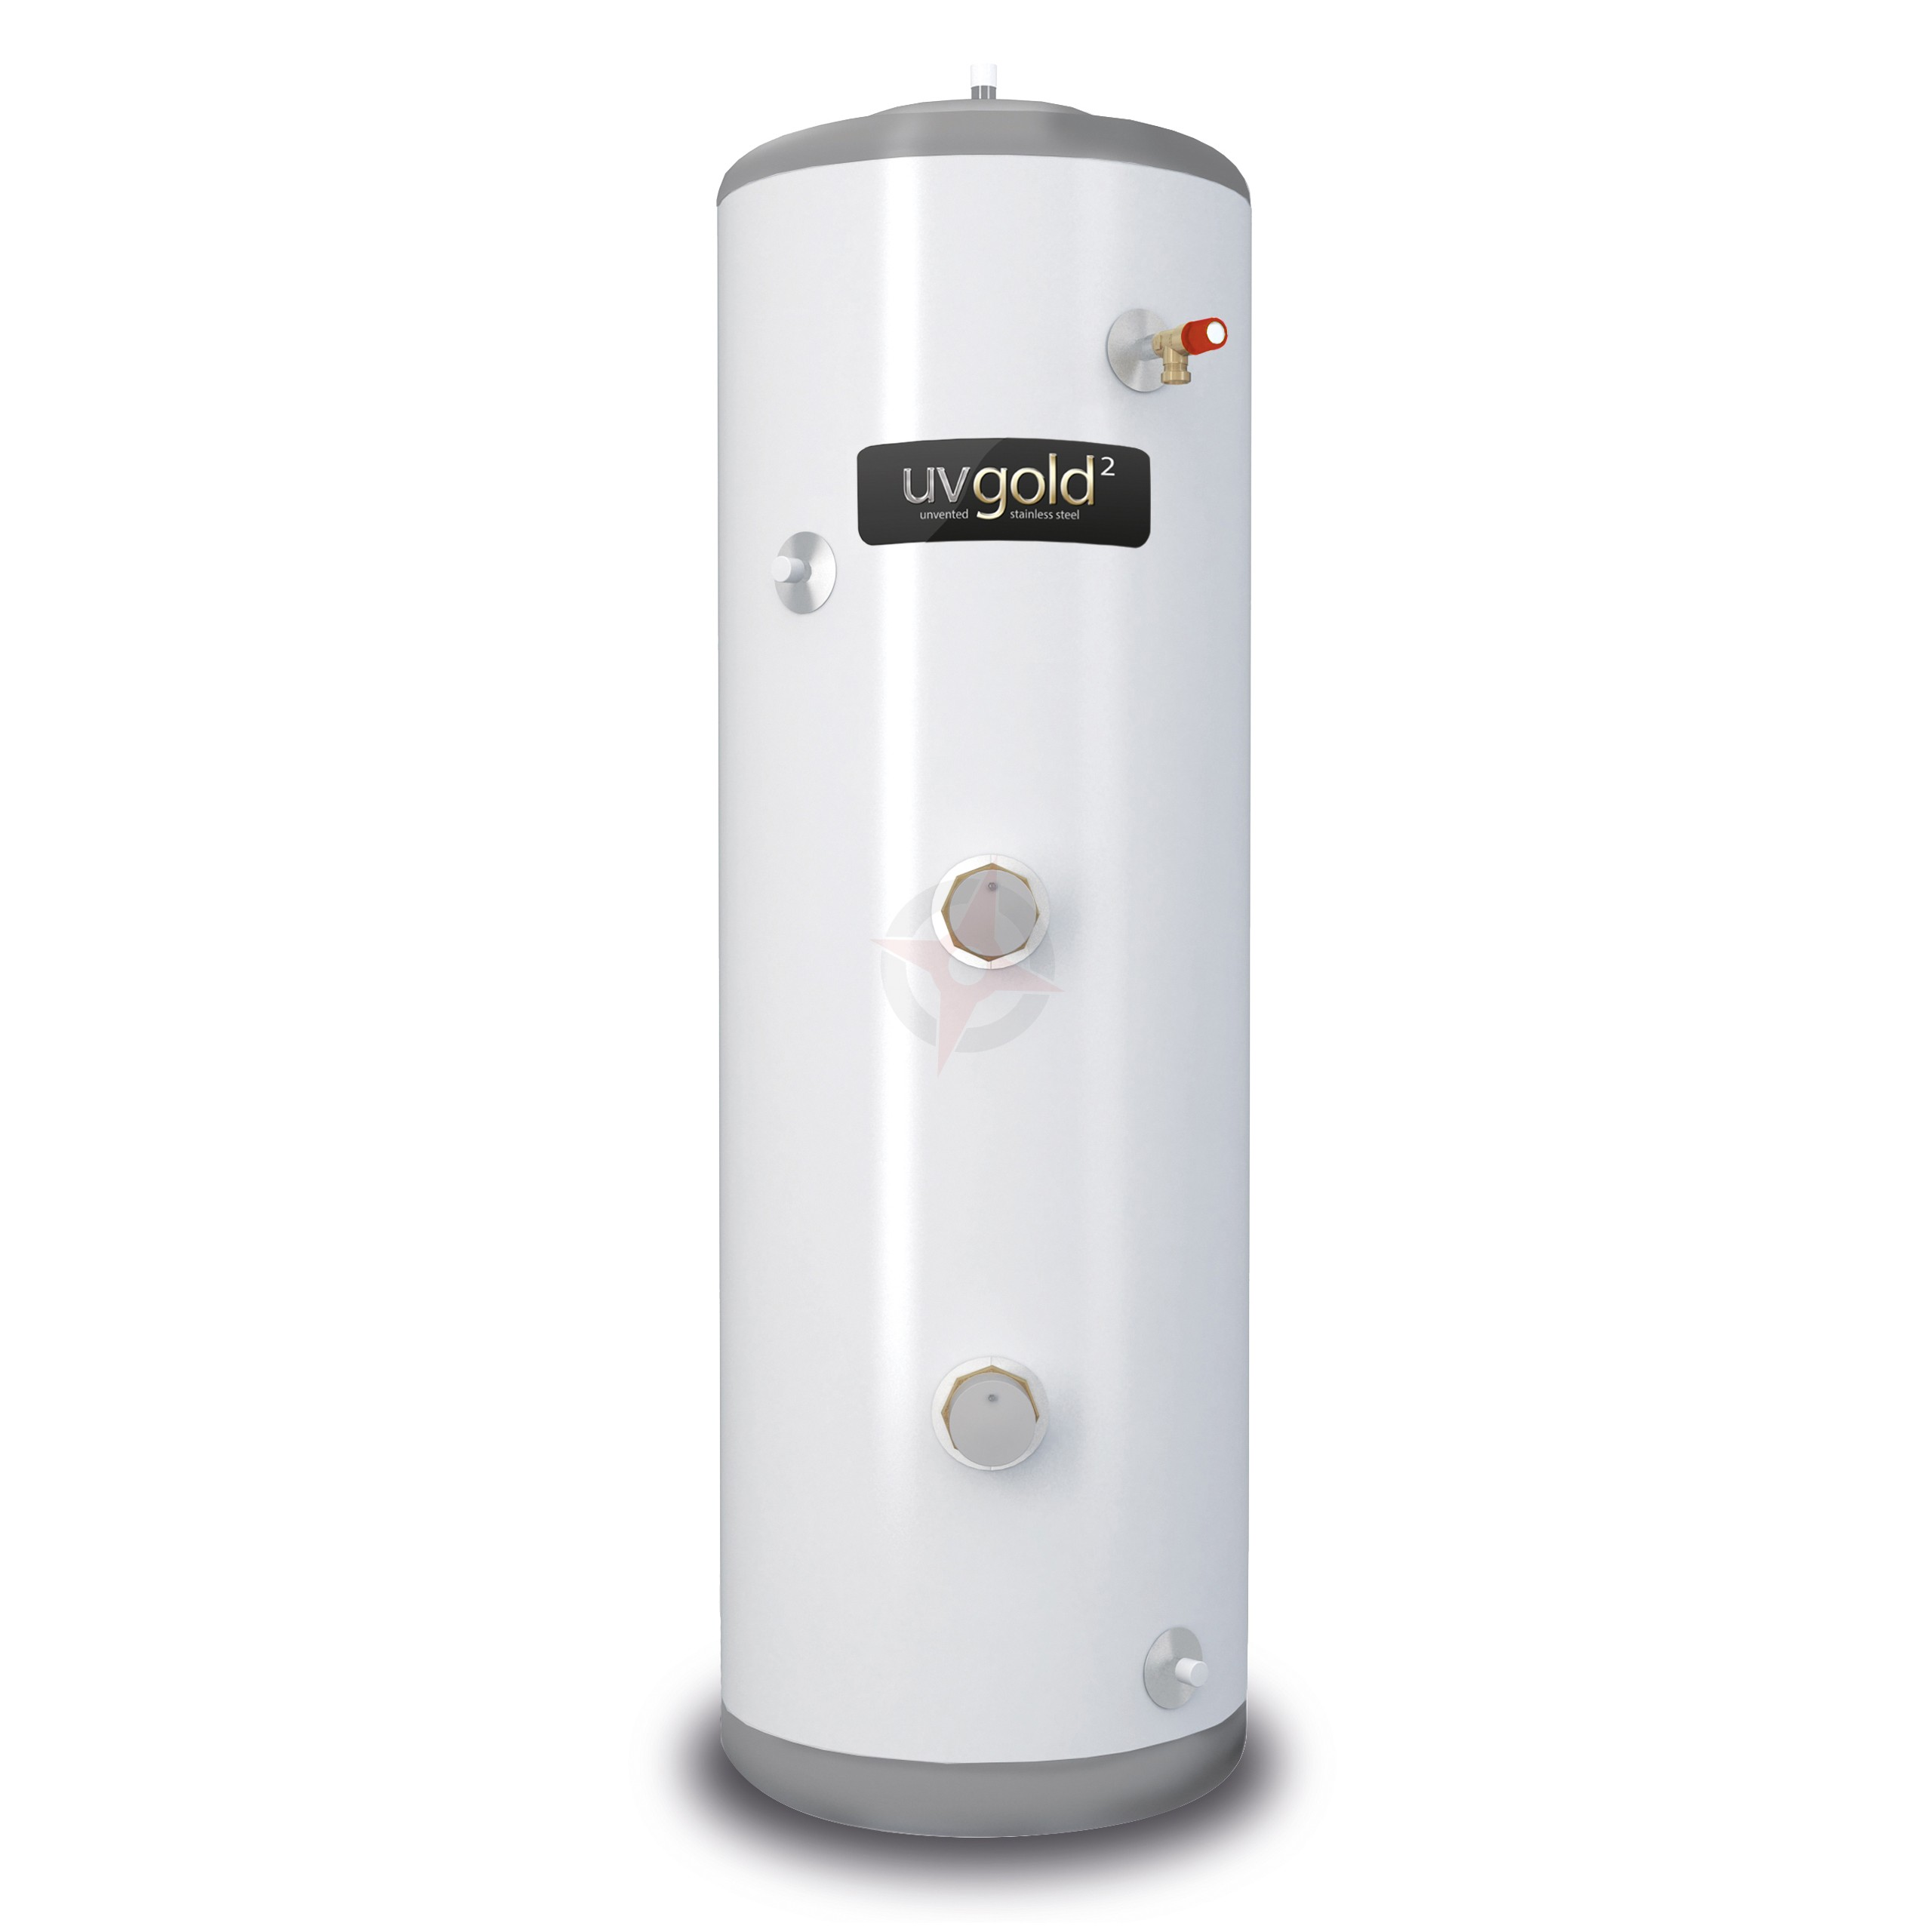 uvgold2 120L Direct Unvented Hot Water Storage Cylinder & Kit